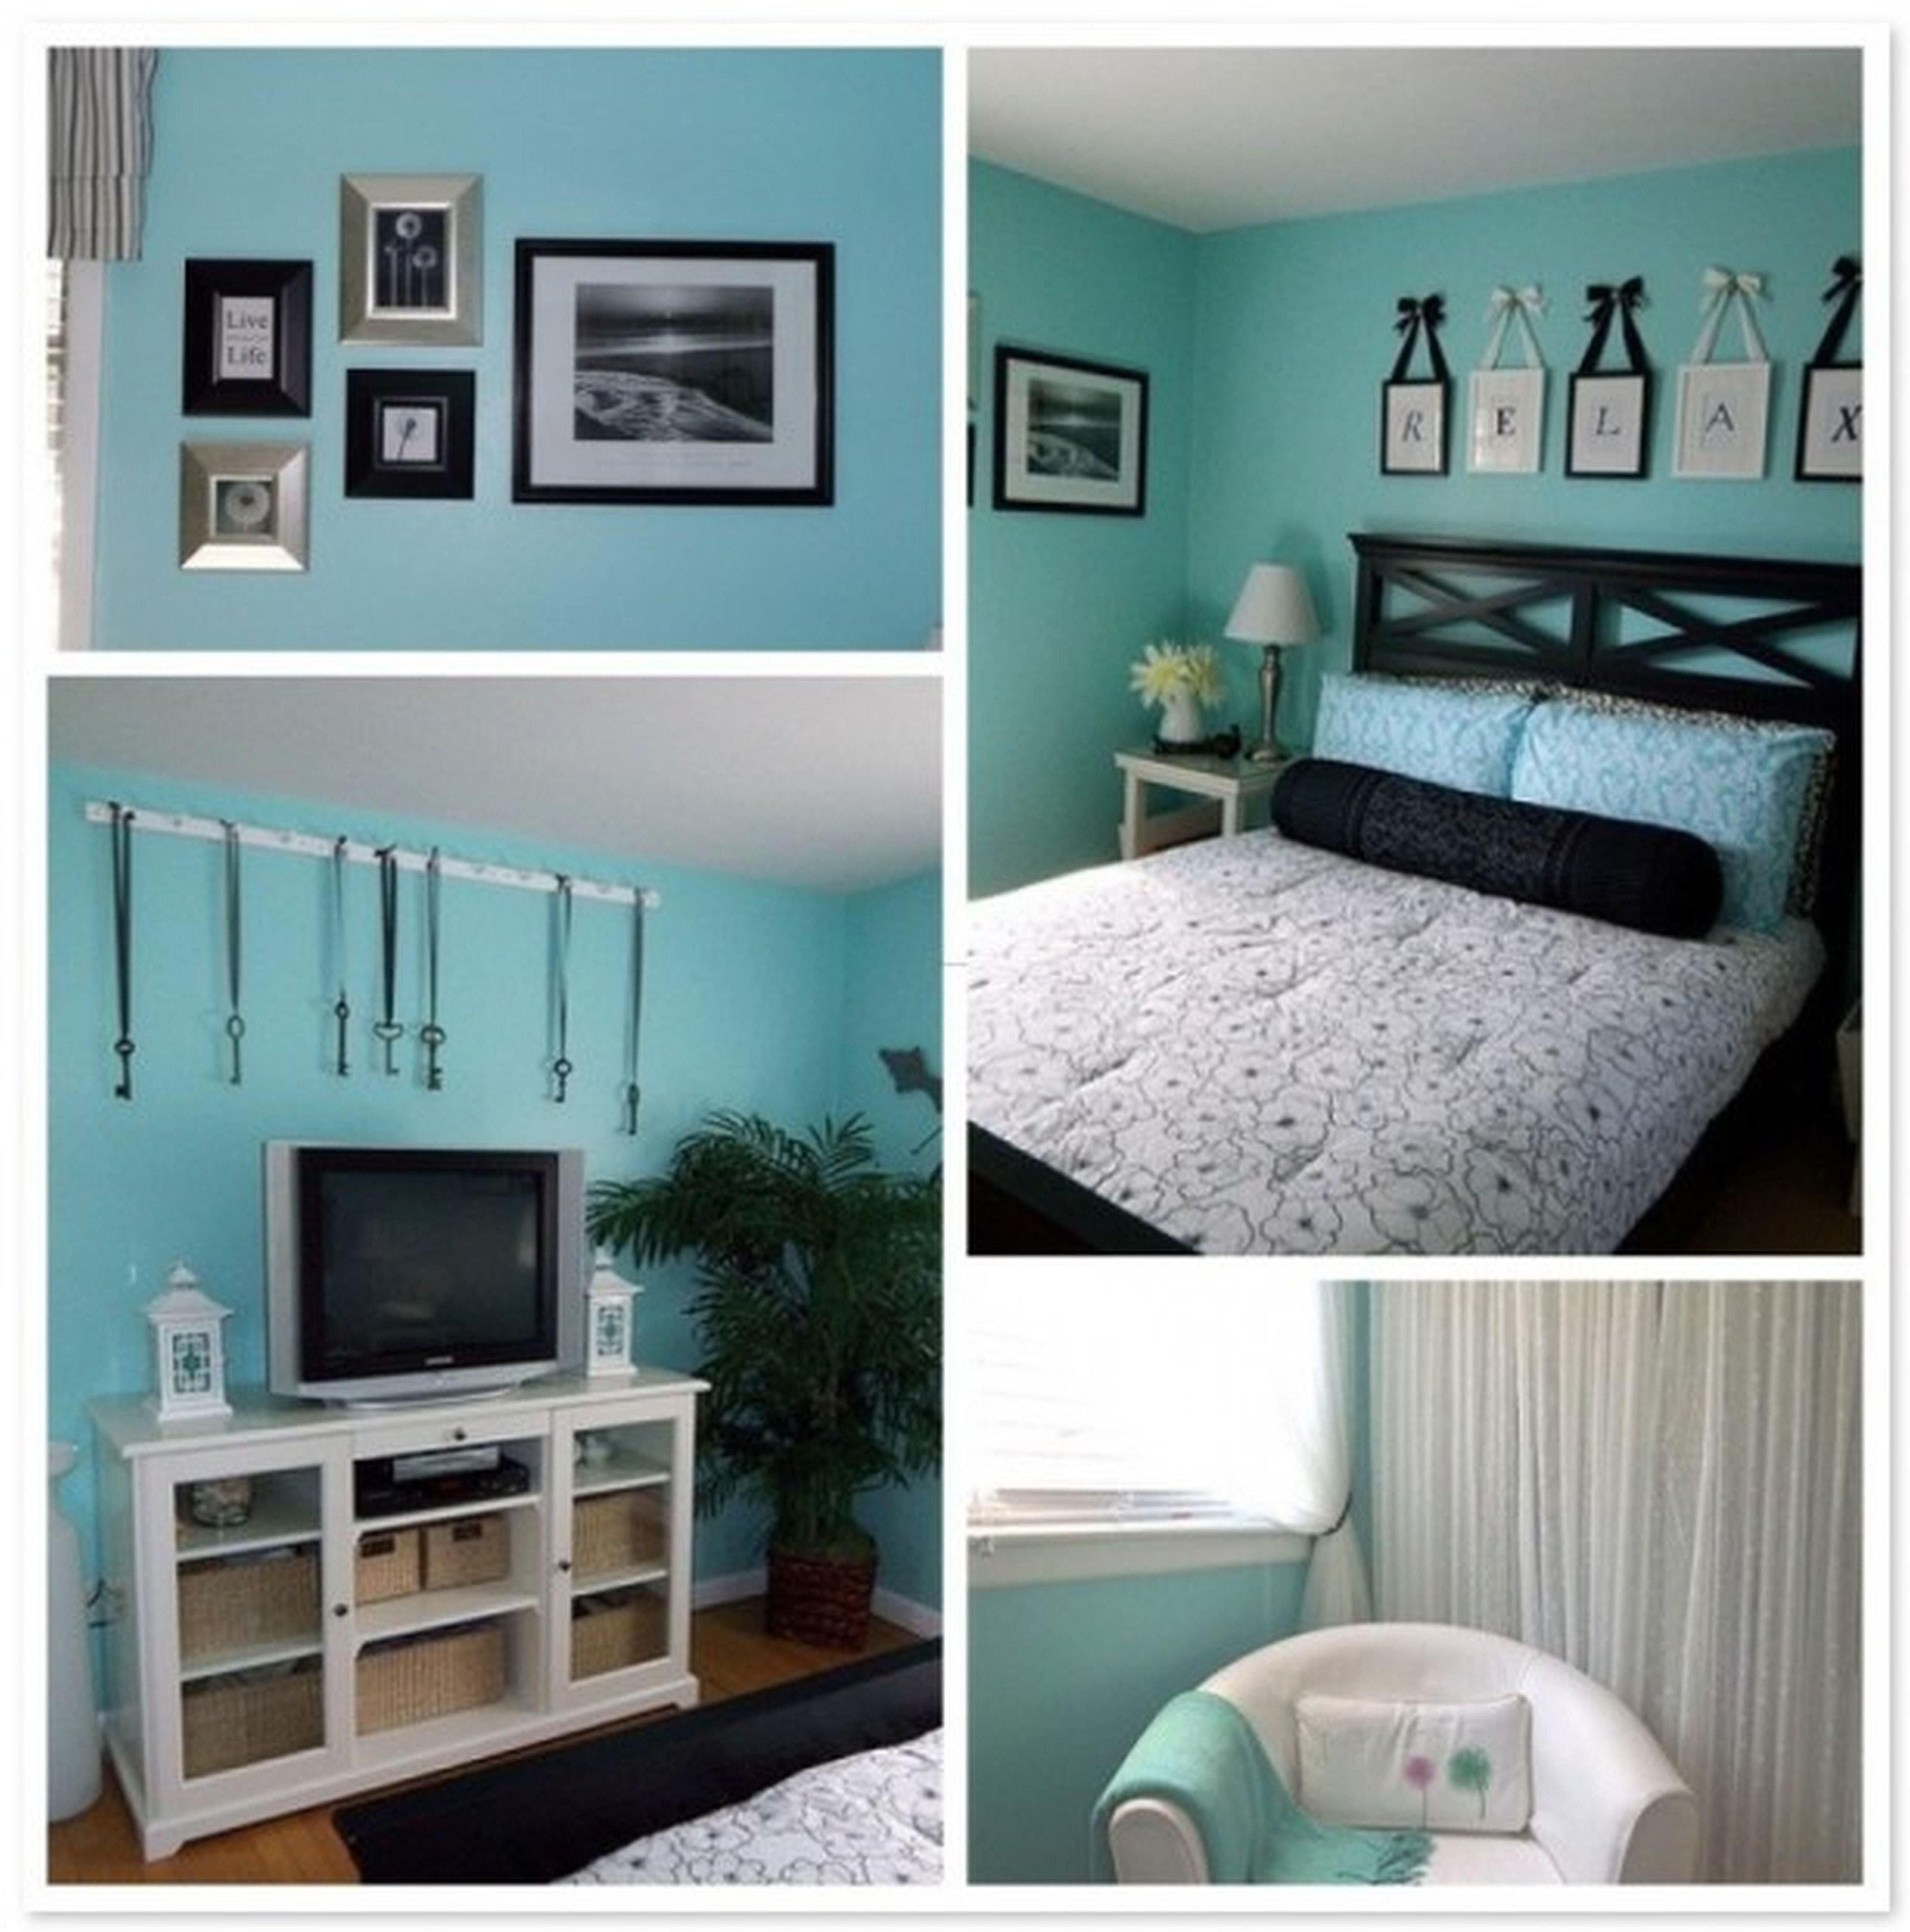 Teal Wall Paint Domino Home Bedroom Home Teal Walls